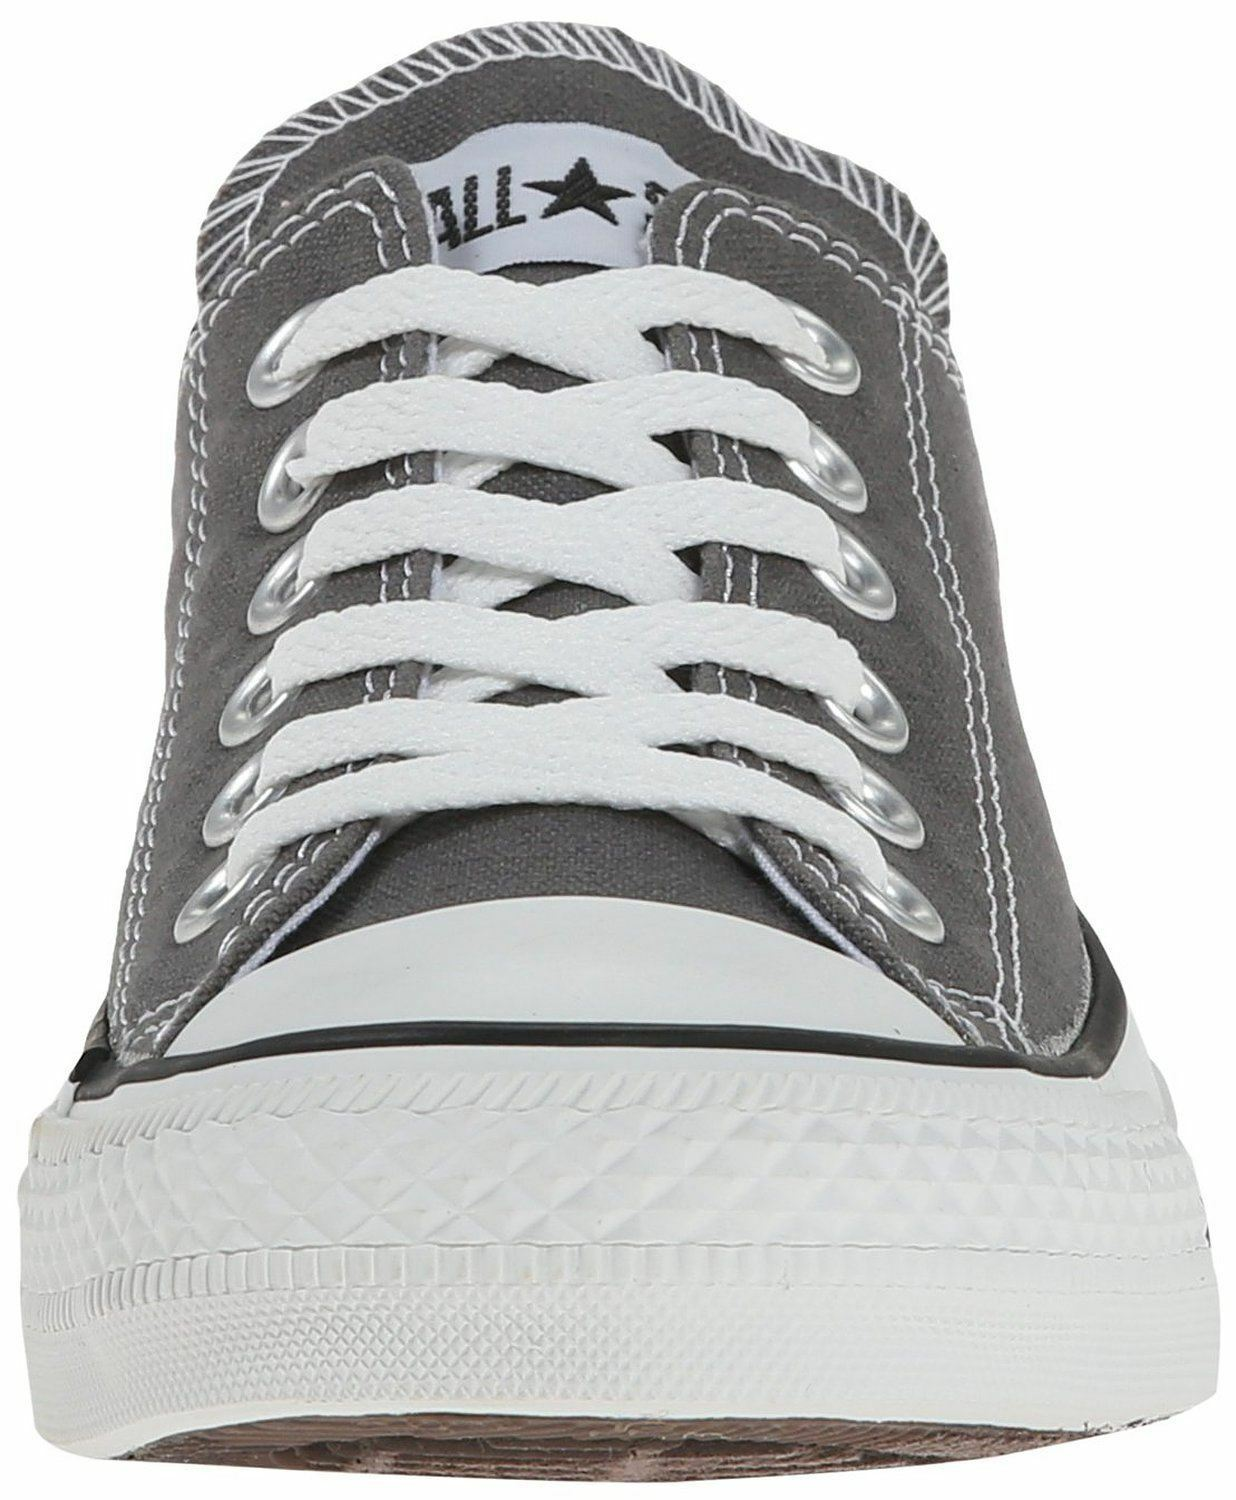 Converse Chuck Taylor Unisex All Star Charcoal Weiß Ox Lo Unisex Taylor Sneakers Schuhe 77d8b9